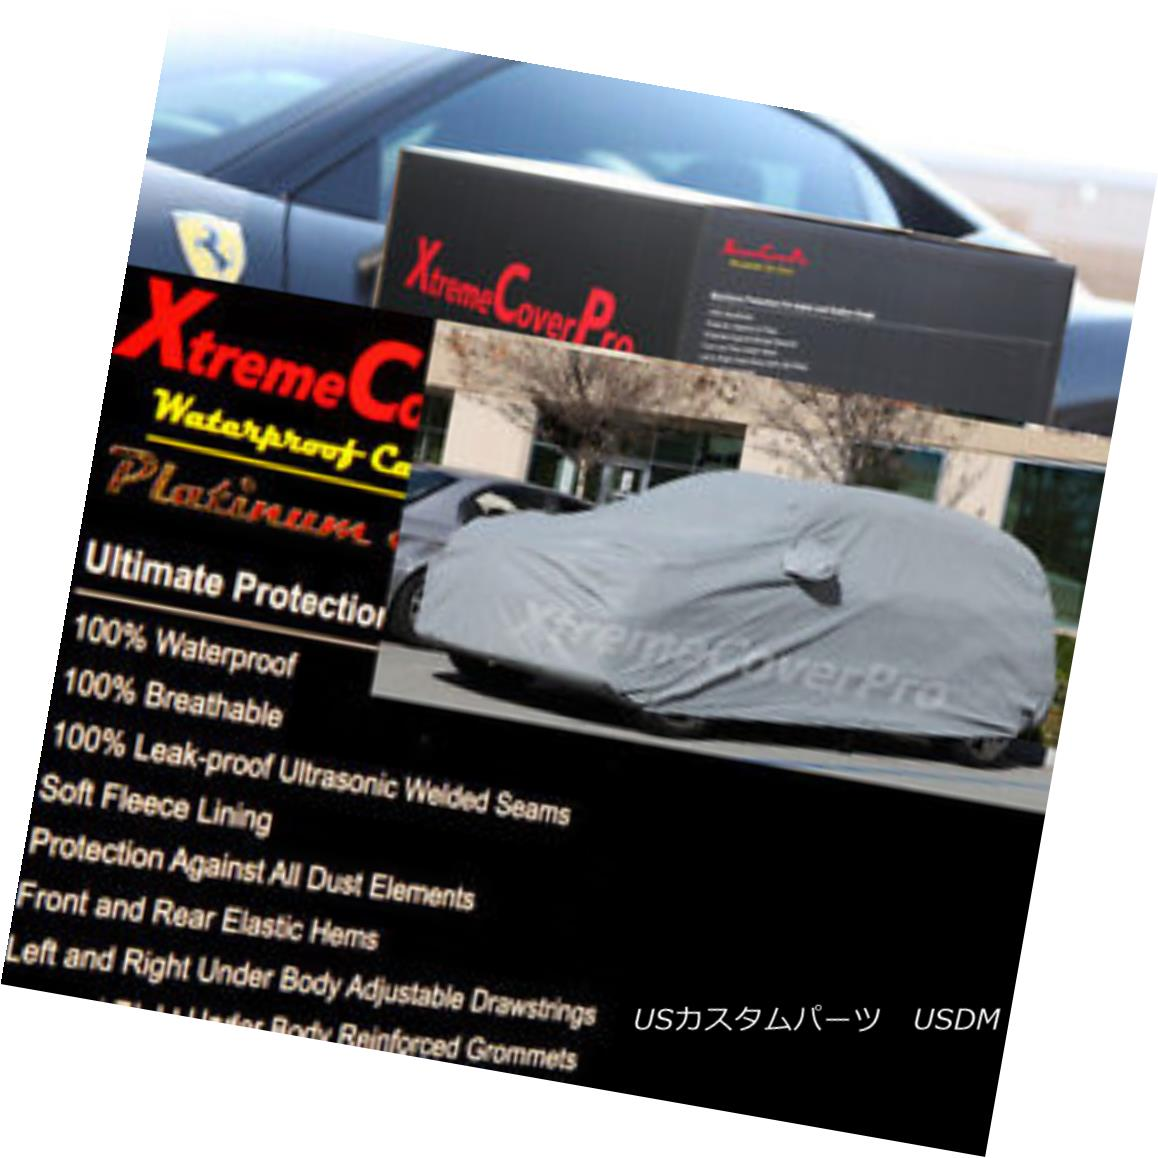 カーカバー 2007 2008 2009 GMC Yukon XL Waterproof Car Cover w/MirrorPocket 2007年2008年GMCユーコンXL防水カーカバー付きMirrorPocket